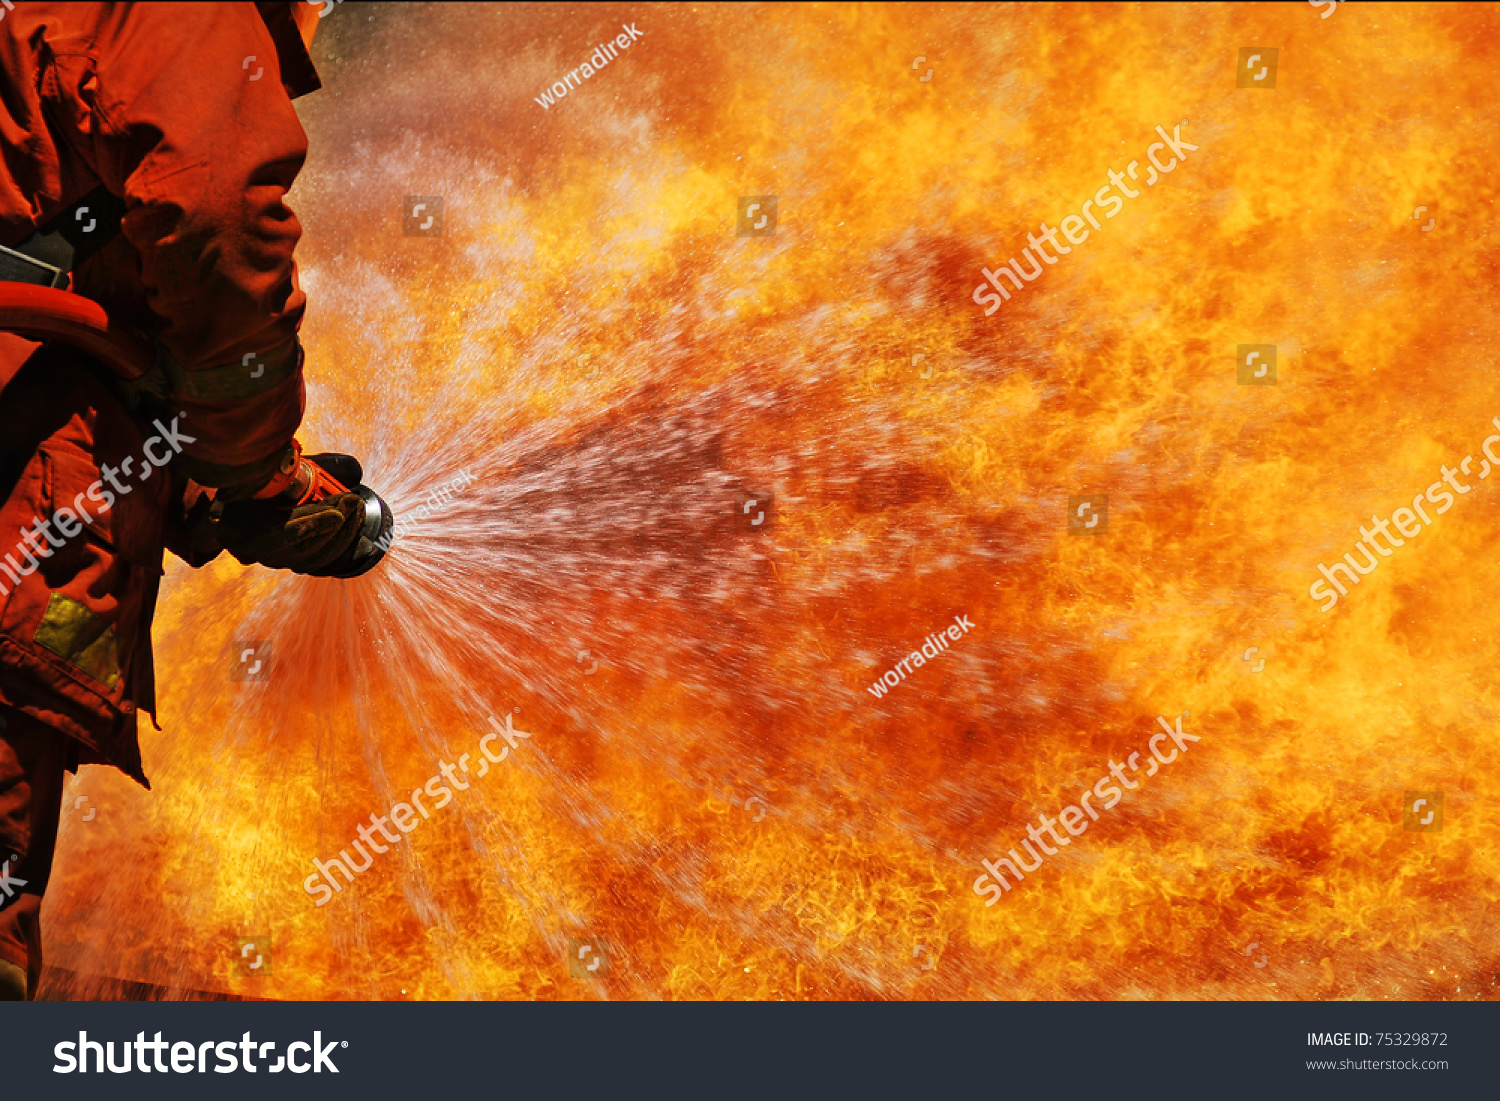 Firefighter Fighting Fire During Training Stock Photo 75329872 ...